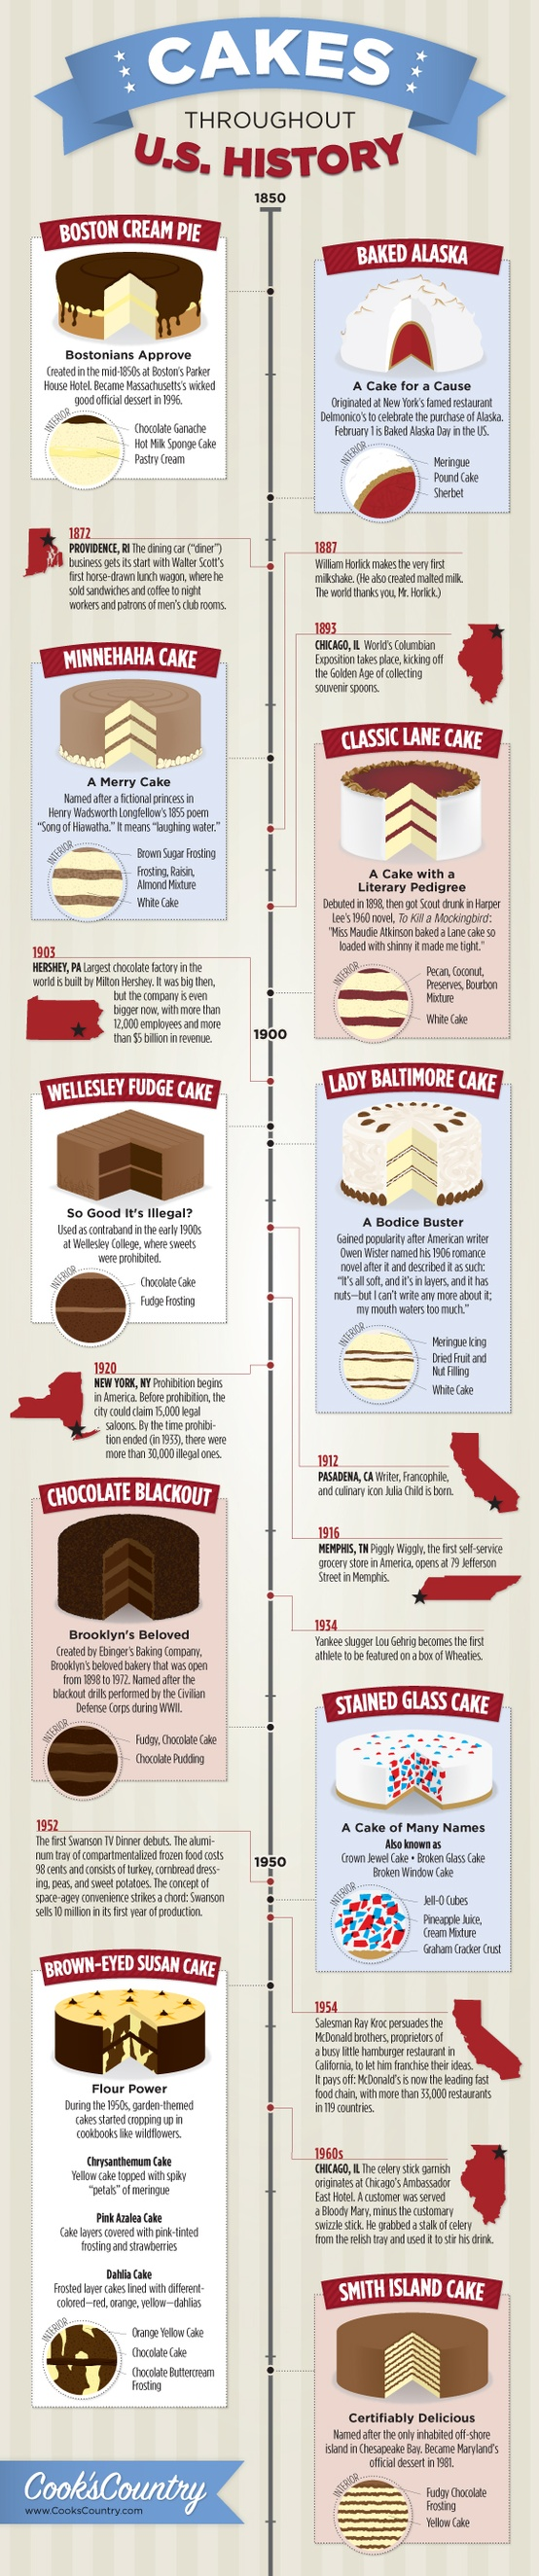 History of Cakes in U.S.